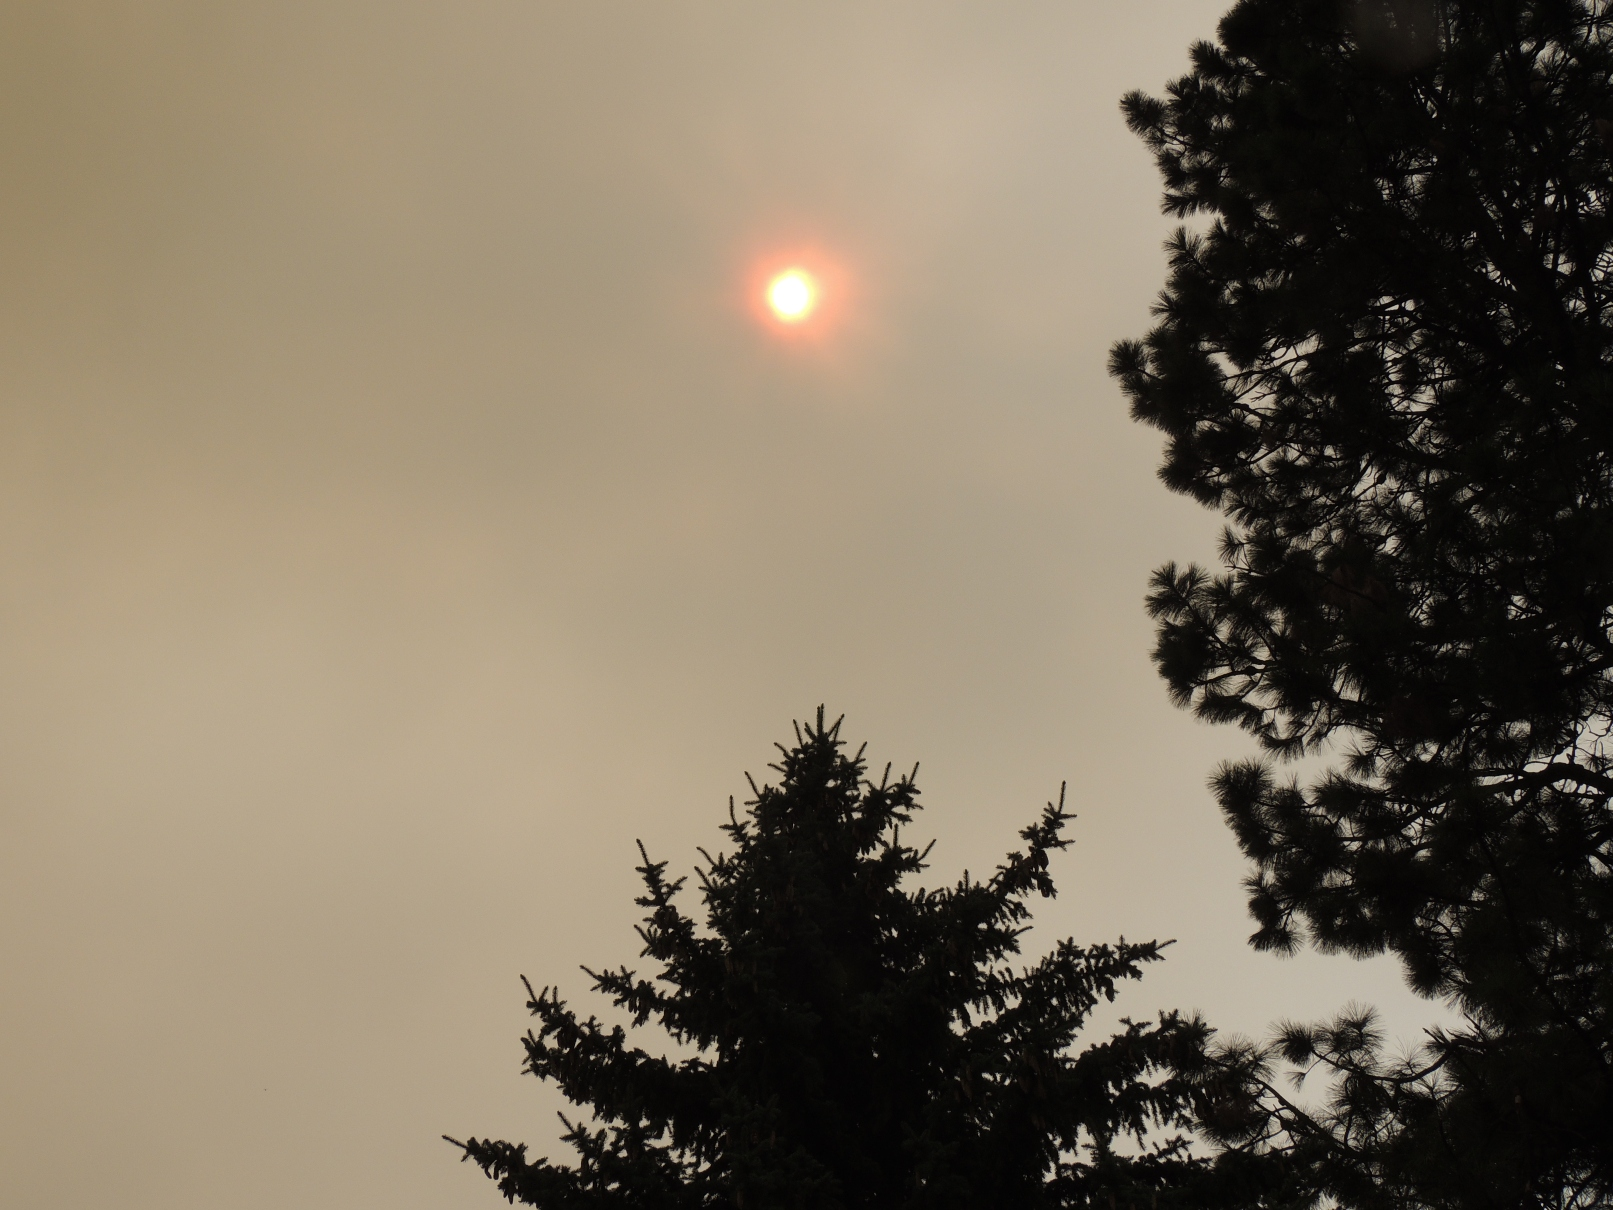 Looking up at the sun through smoky skies, resized